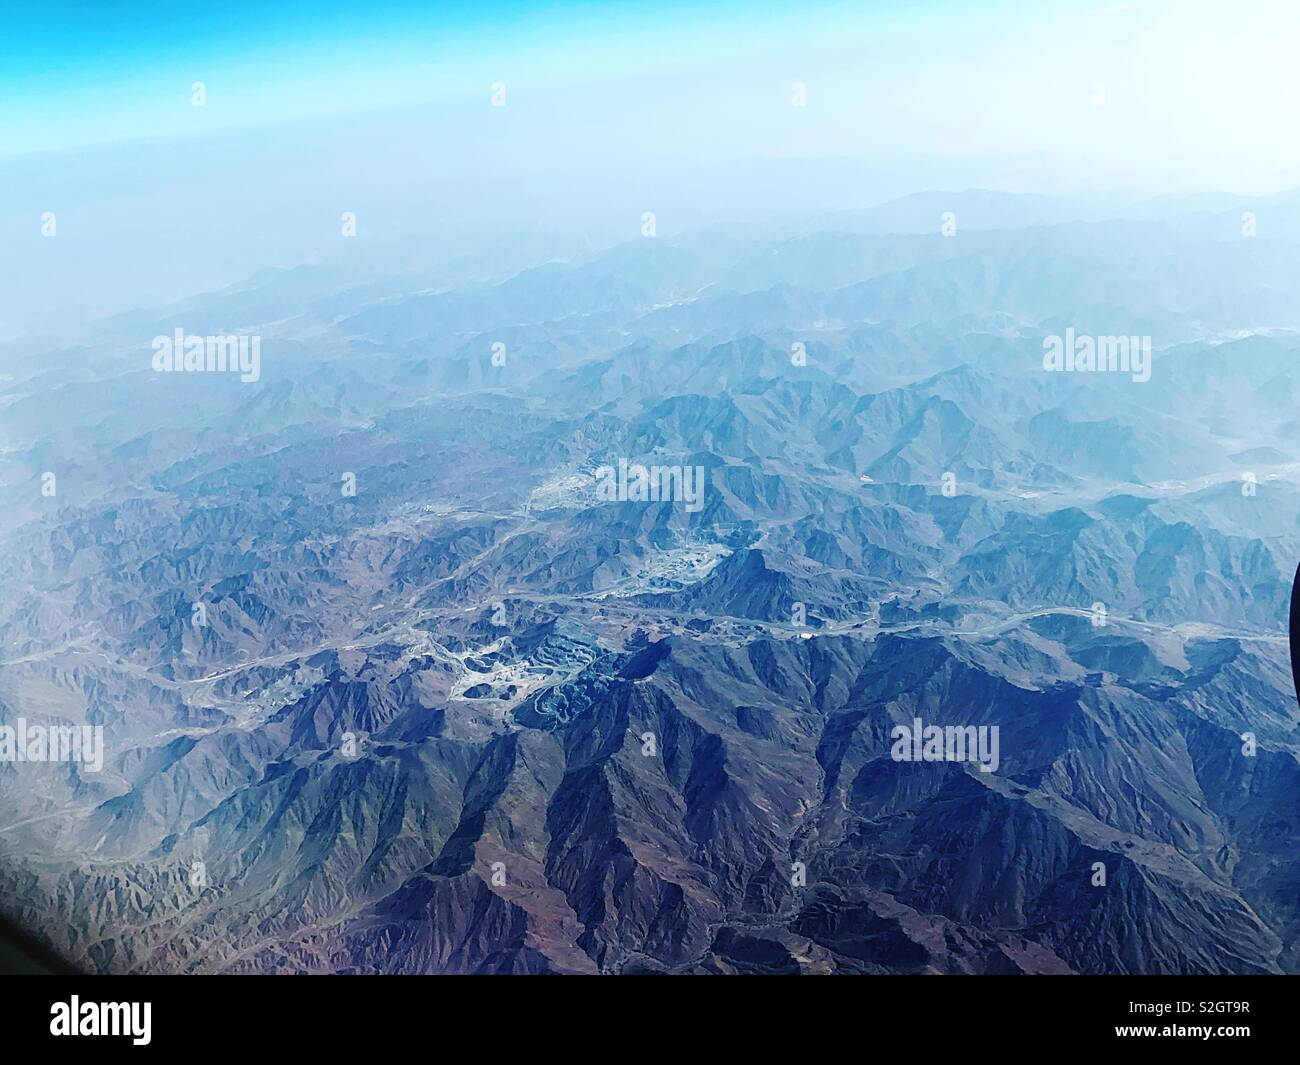 Ariel view of the mountains - Stock Image